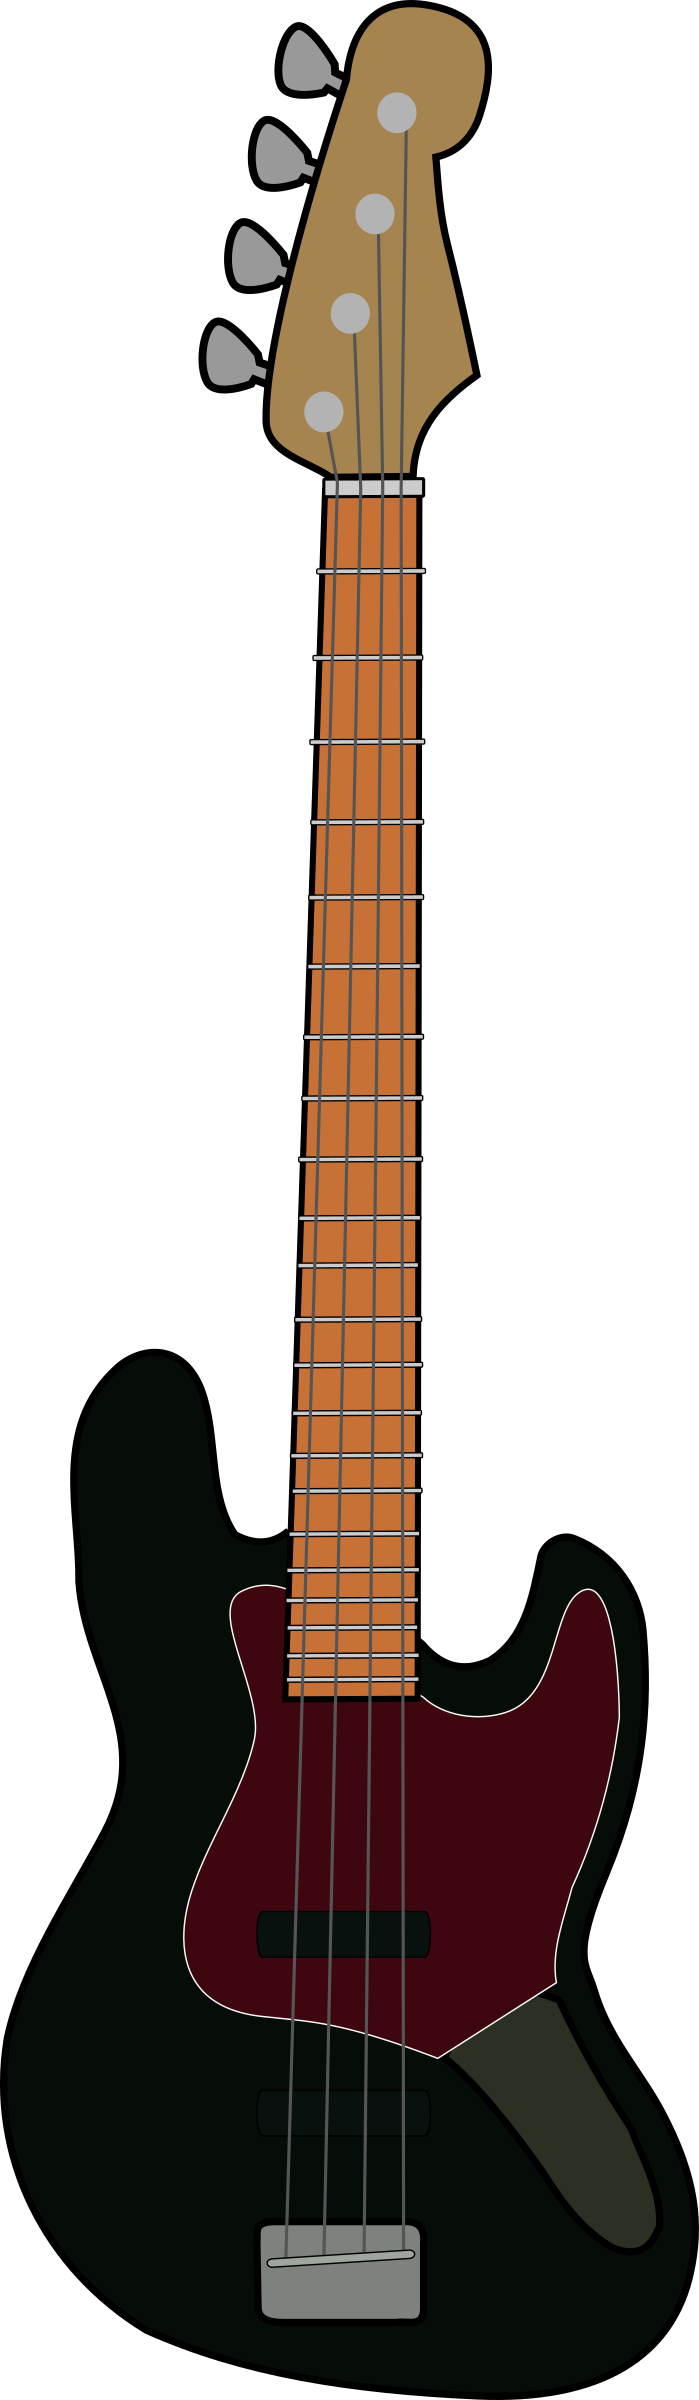 Fender Jazz Bass by Piemaster